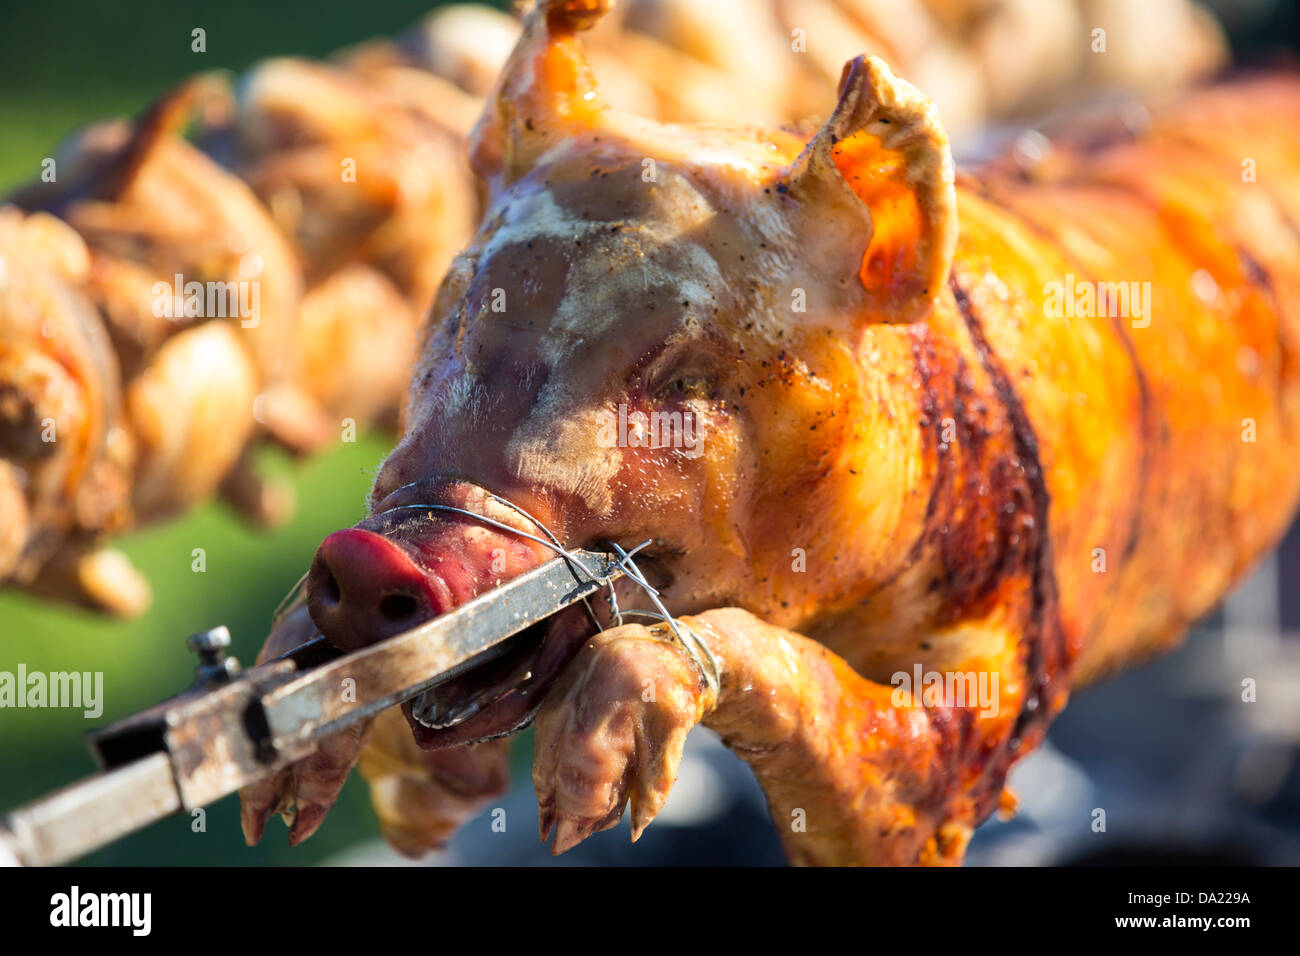 A hog roast and chickens roasting over a charcoal barbeque. - Stock Image